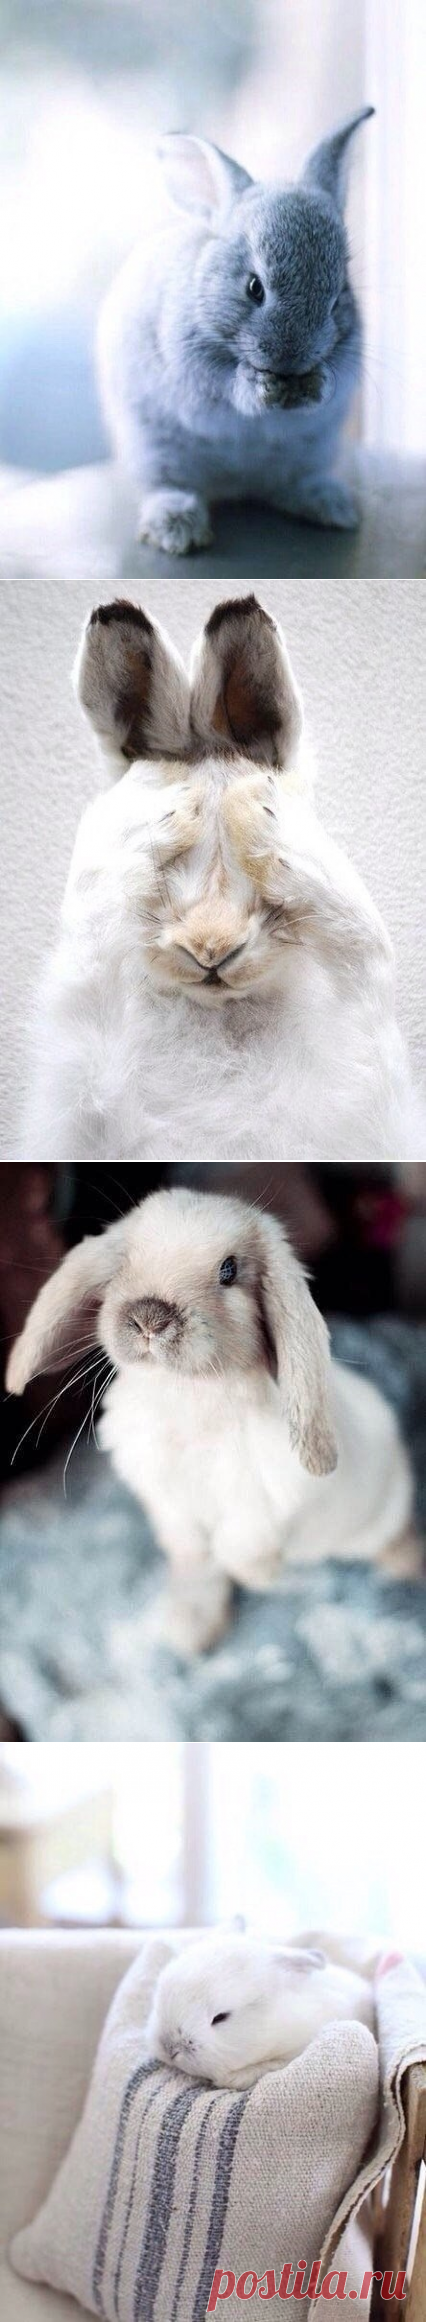 Hares)